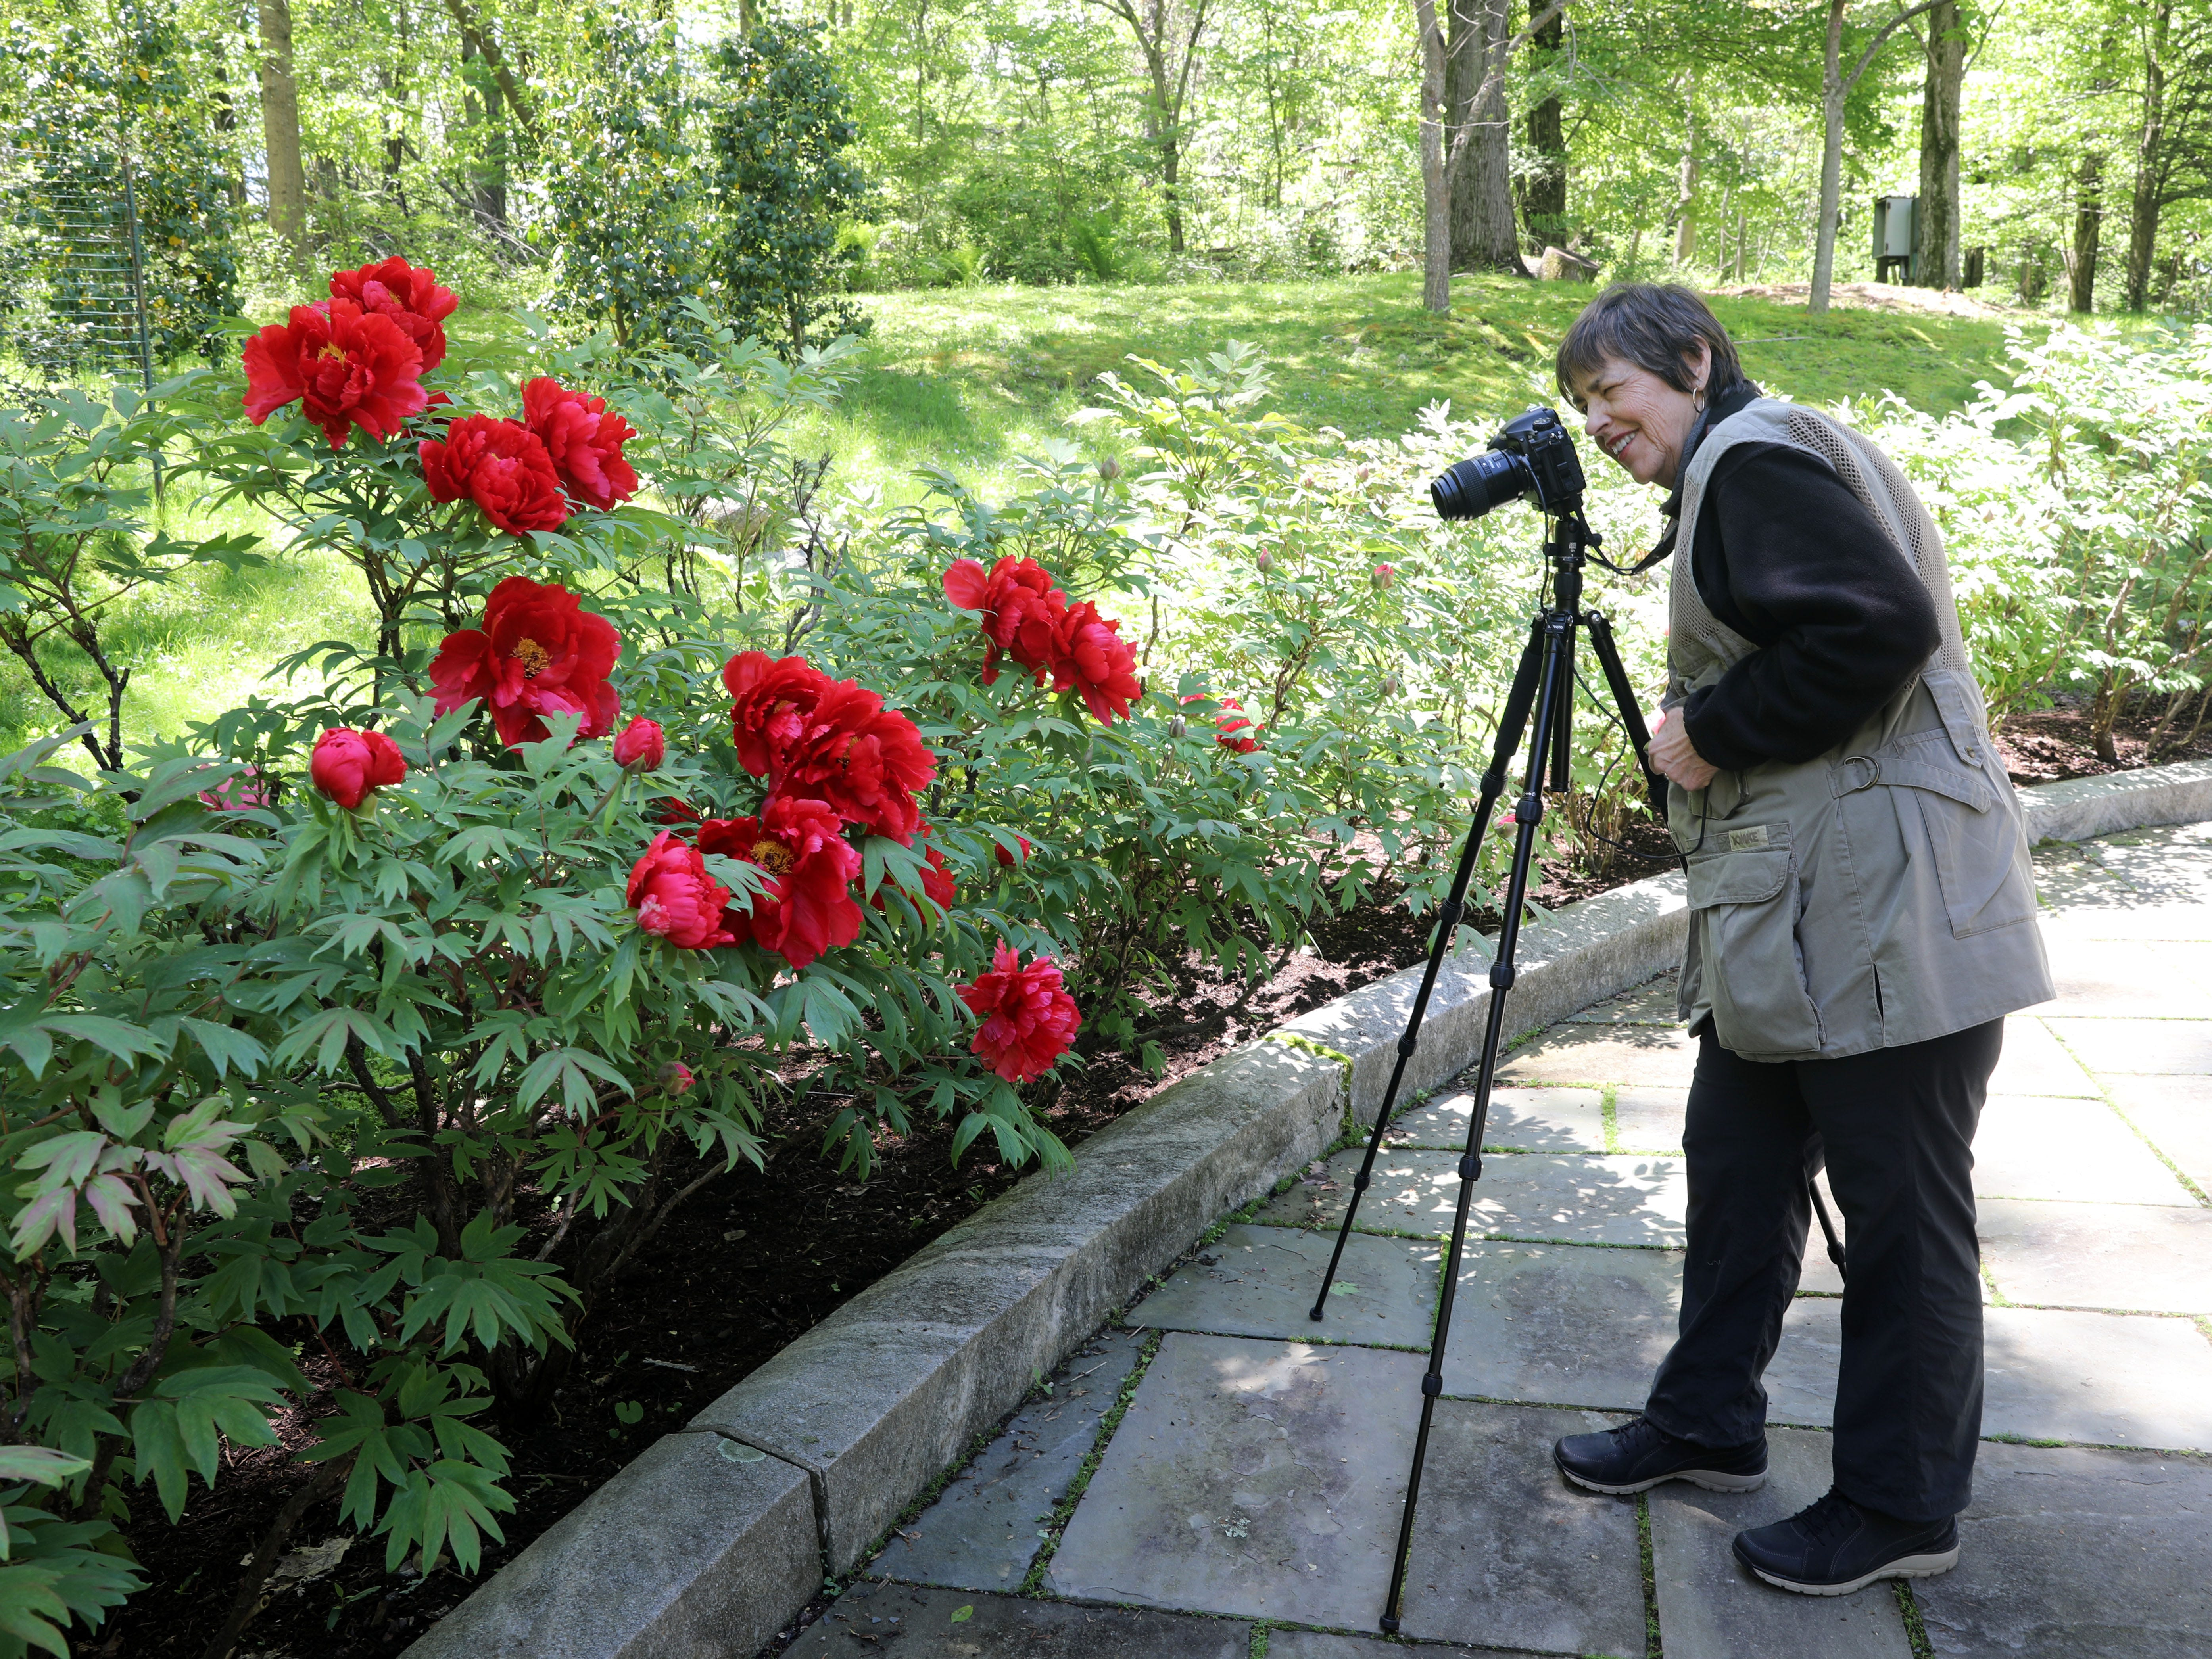 Jackie Ross of Brewster celebrates her birthday by photographing peonies with her friends from the Westchester Photographic Society at Rockefeller State Park Preserve in Pleasantville May 15, 2019. The 500 tree plants were a gift from Yatsuka Cho, a small town in Japan, to the Friends of the Rockefeller State Park Preserve to help unite the two countries after September 11.